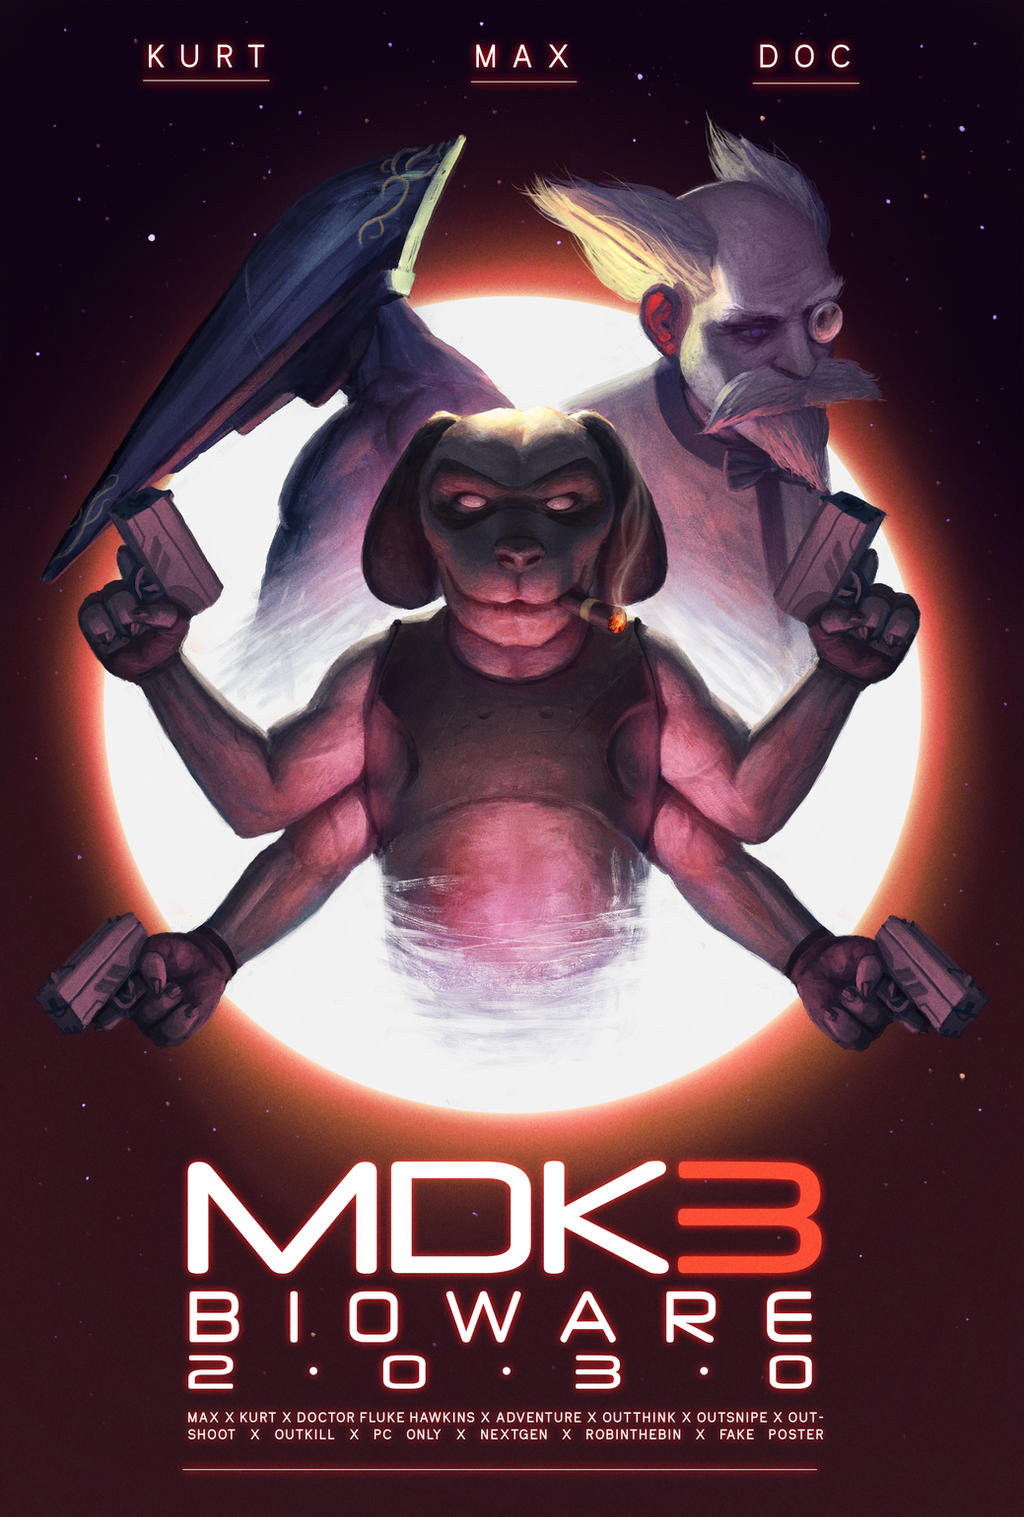 MDK3 by ubuchy